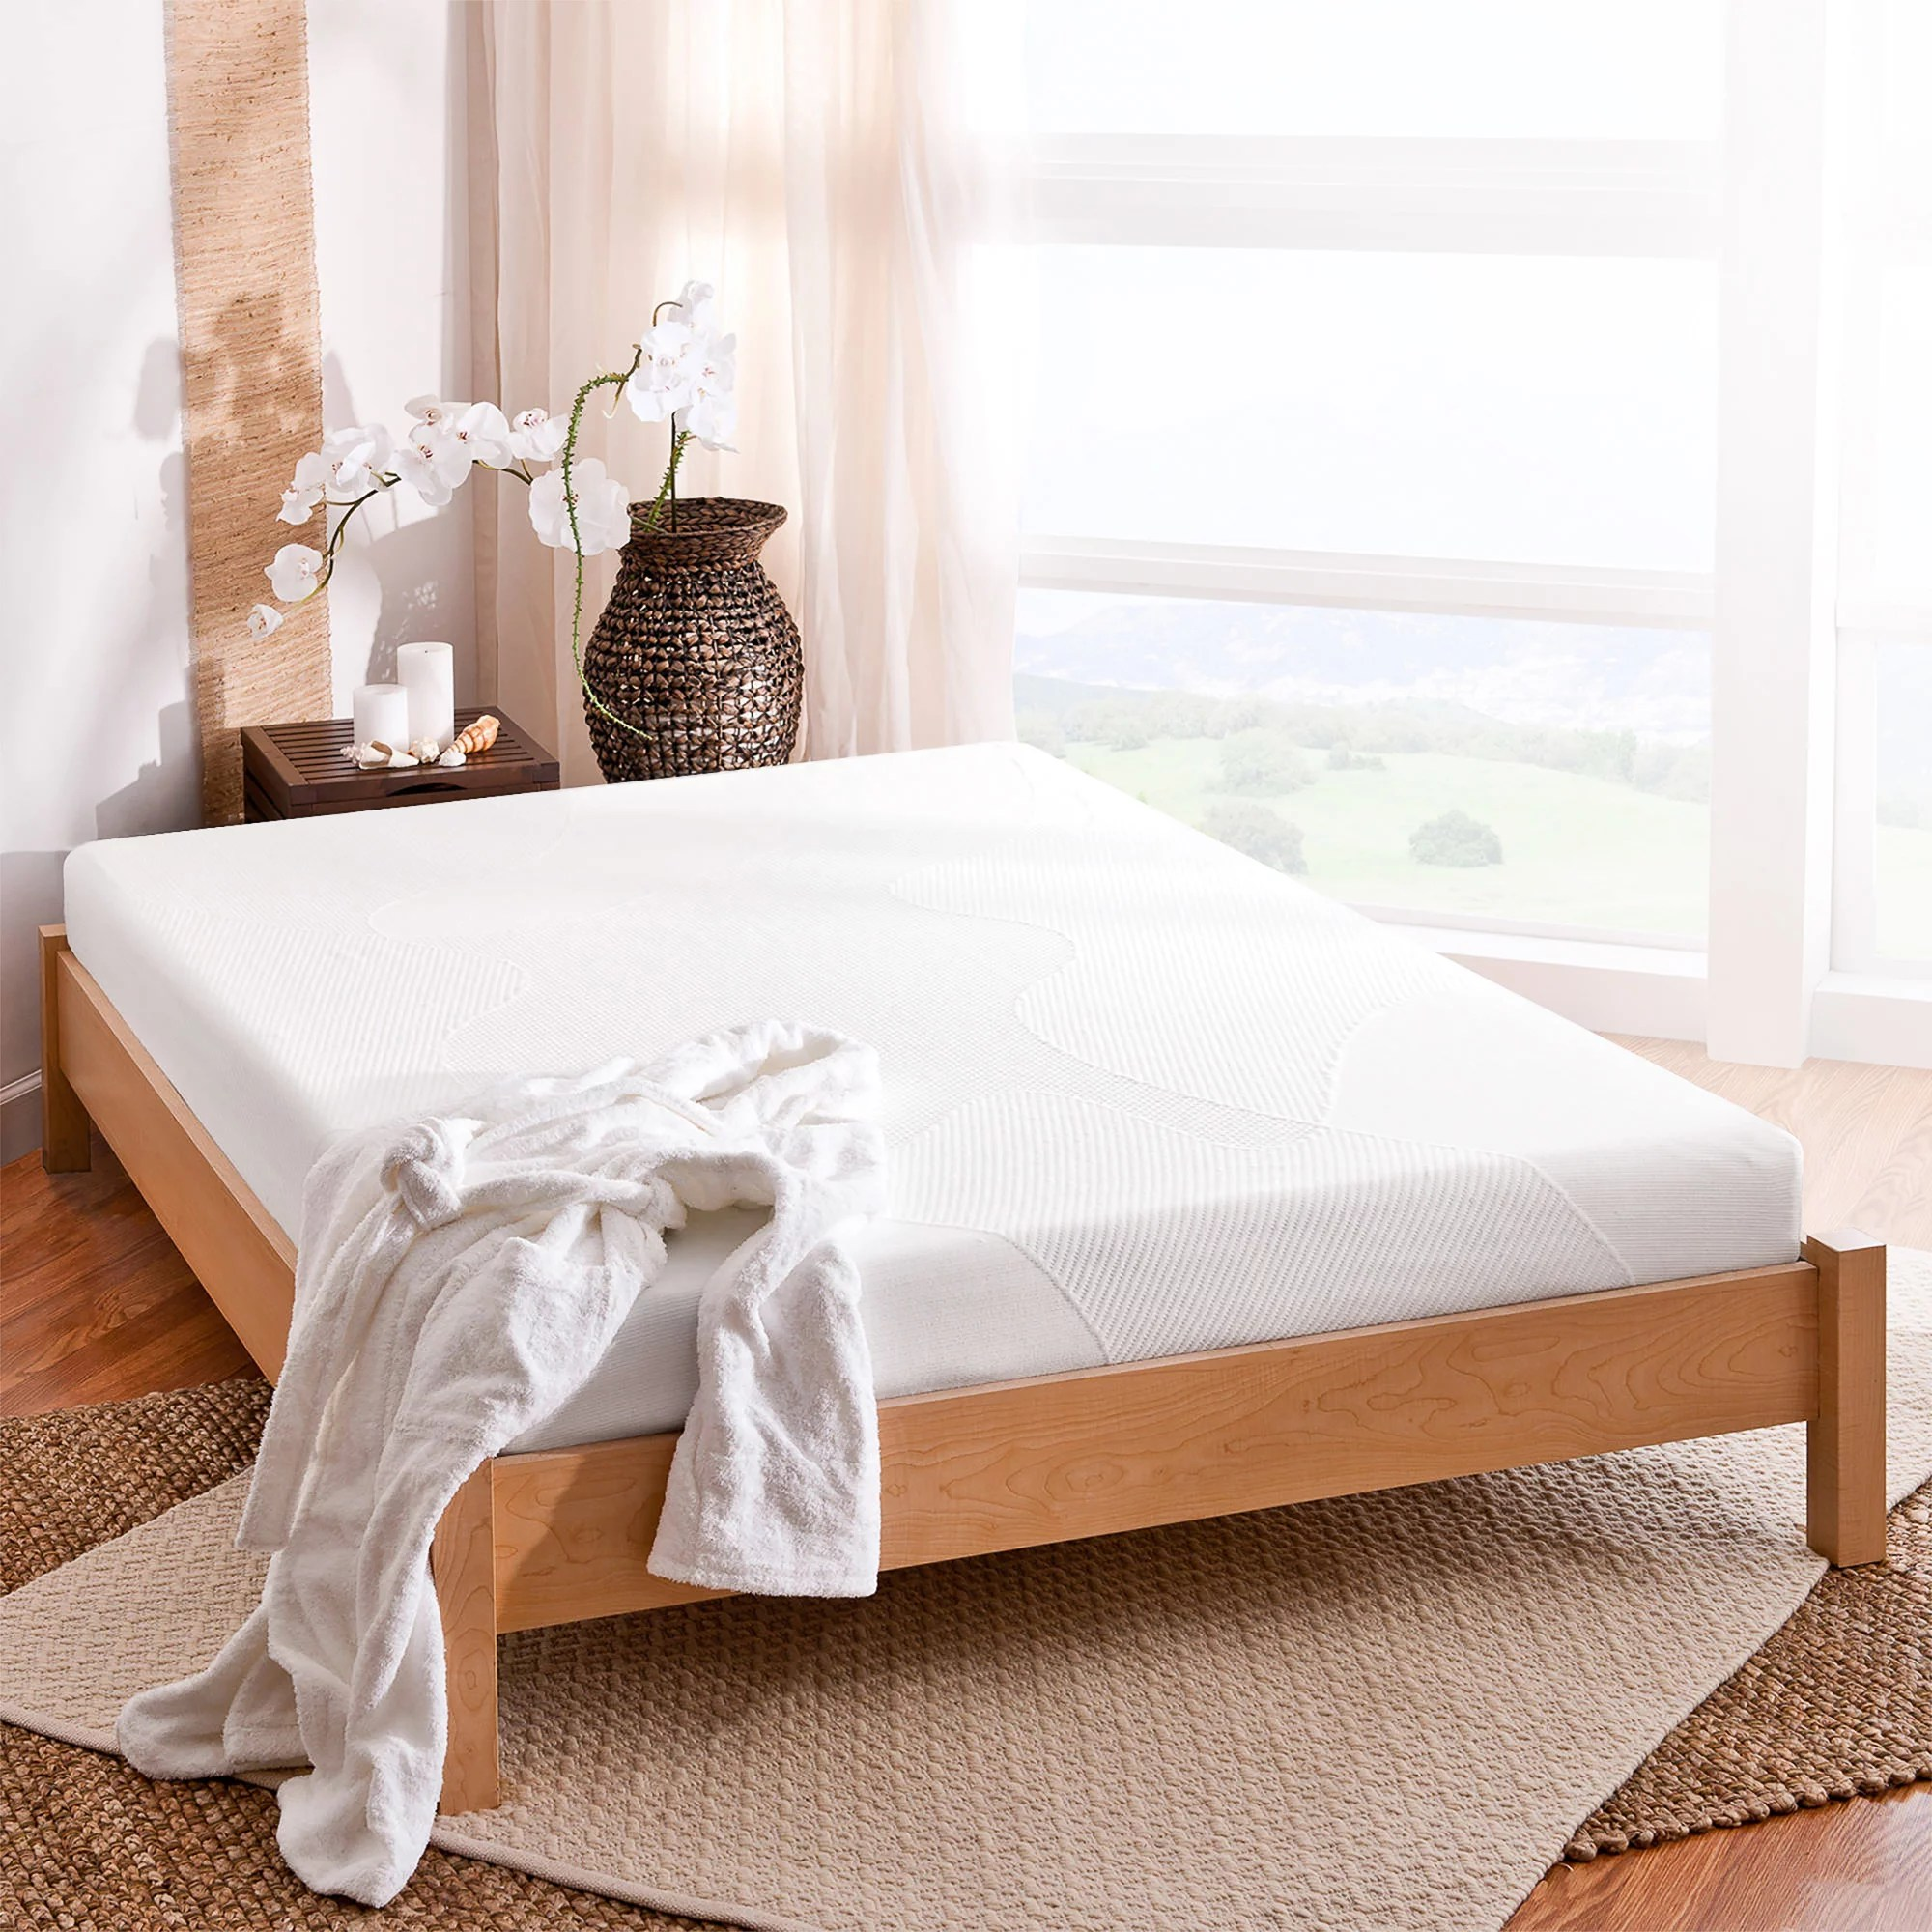 Mainstays is sold exclusively at walmart. spa sensations by zinus 8 comfort memory foam mattress twin